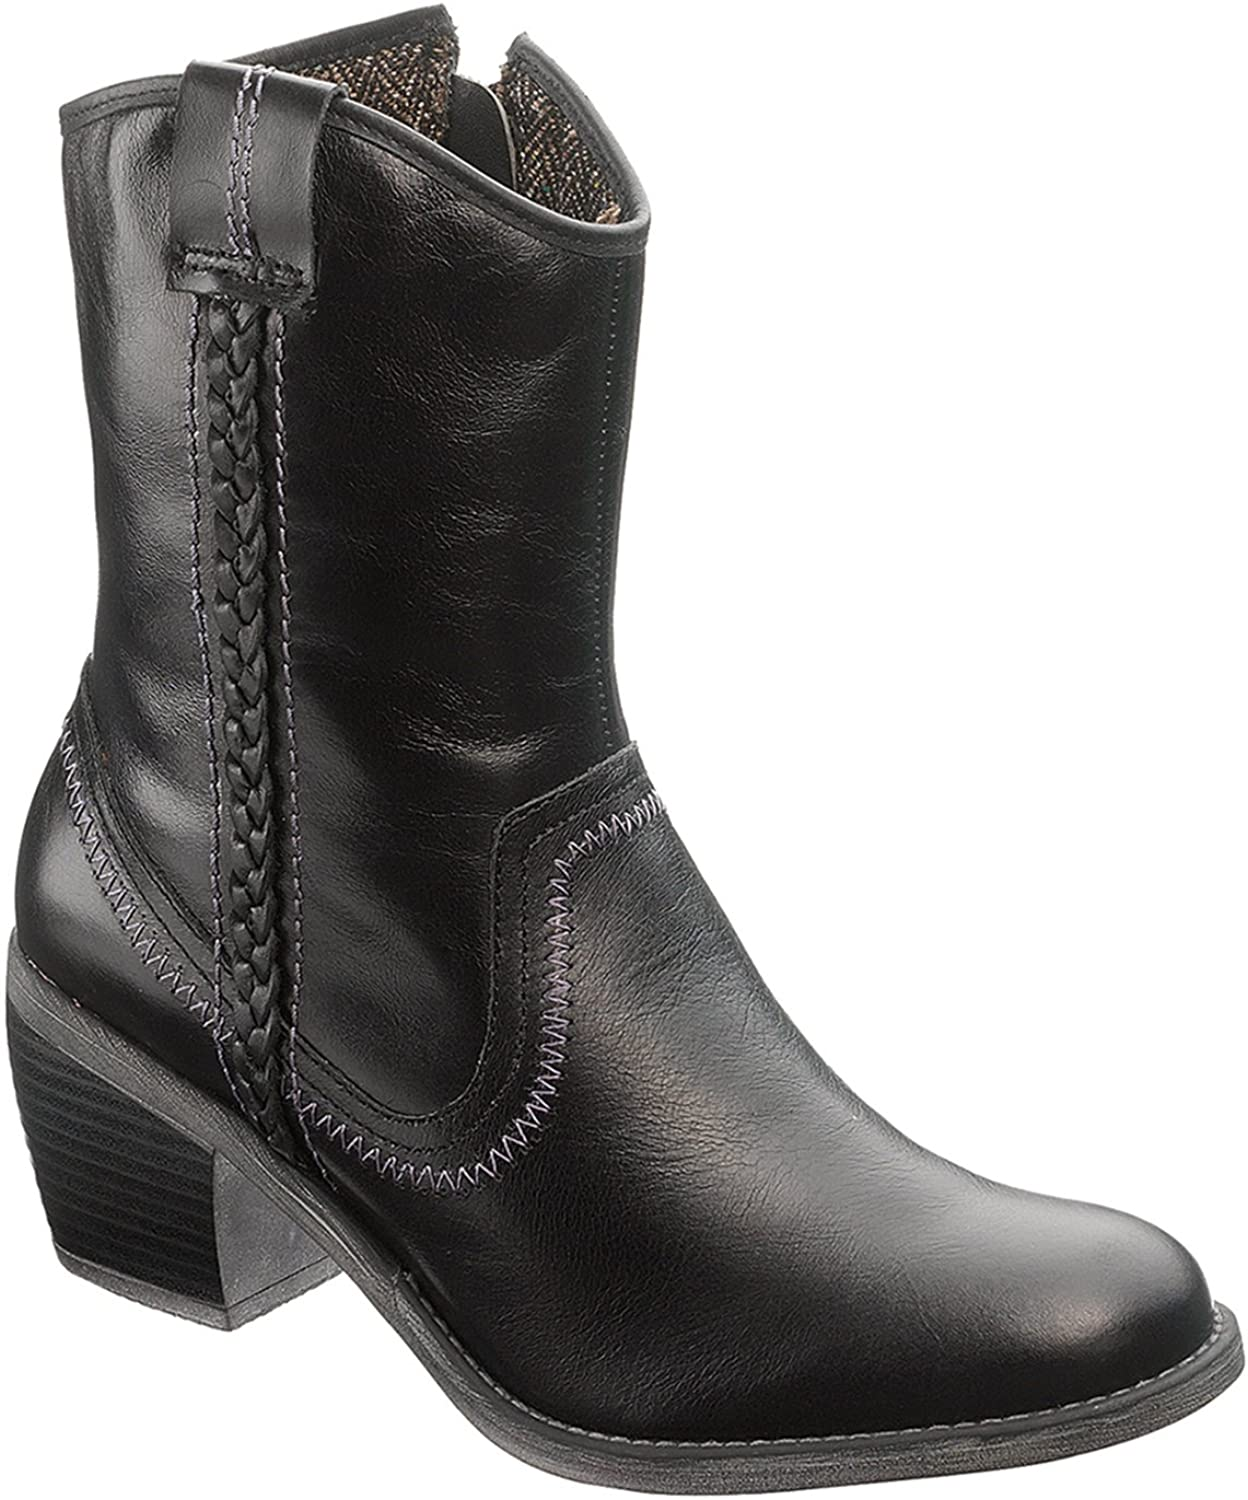 Hush Puppies Women's Rustique West Ankle Boot